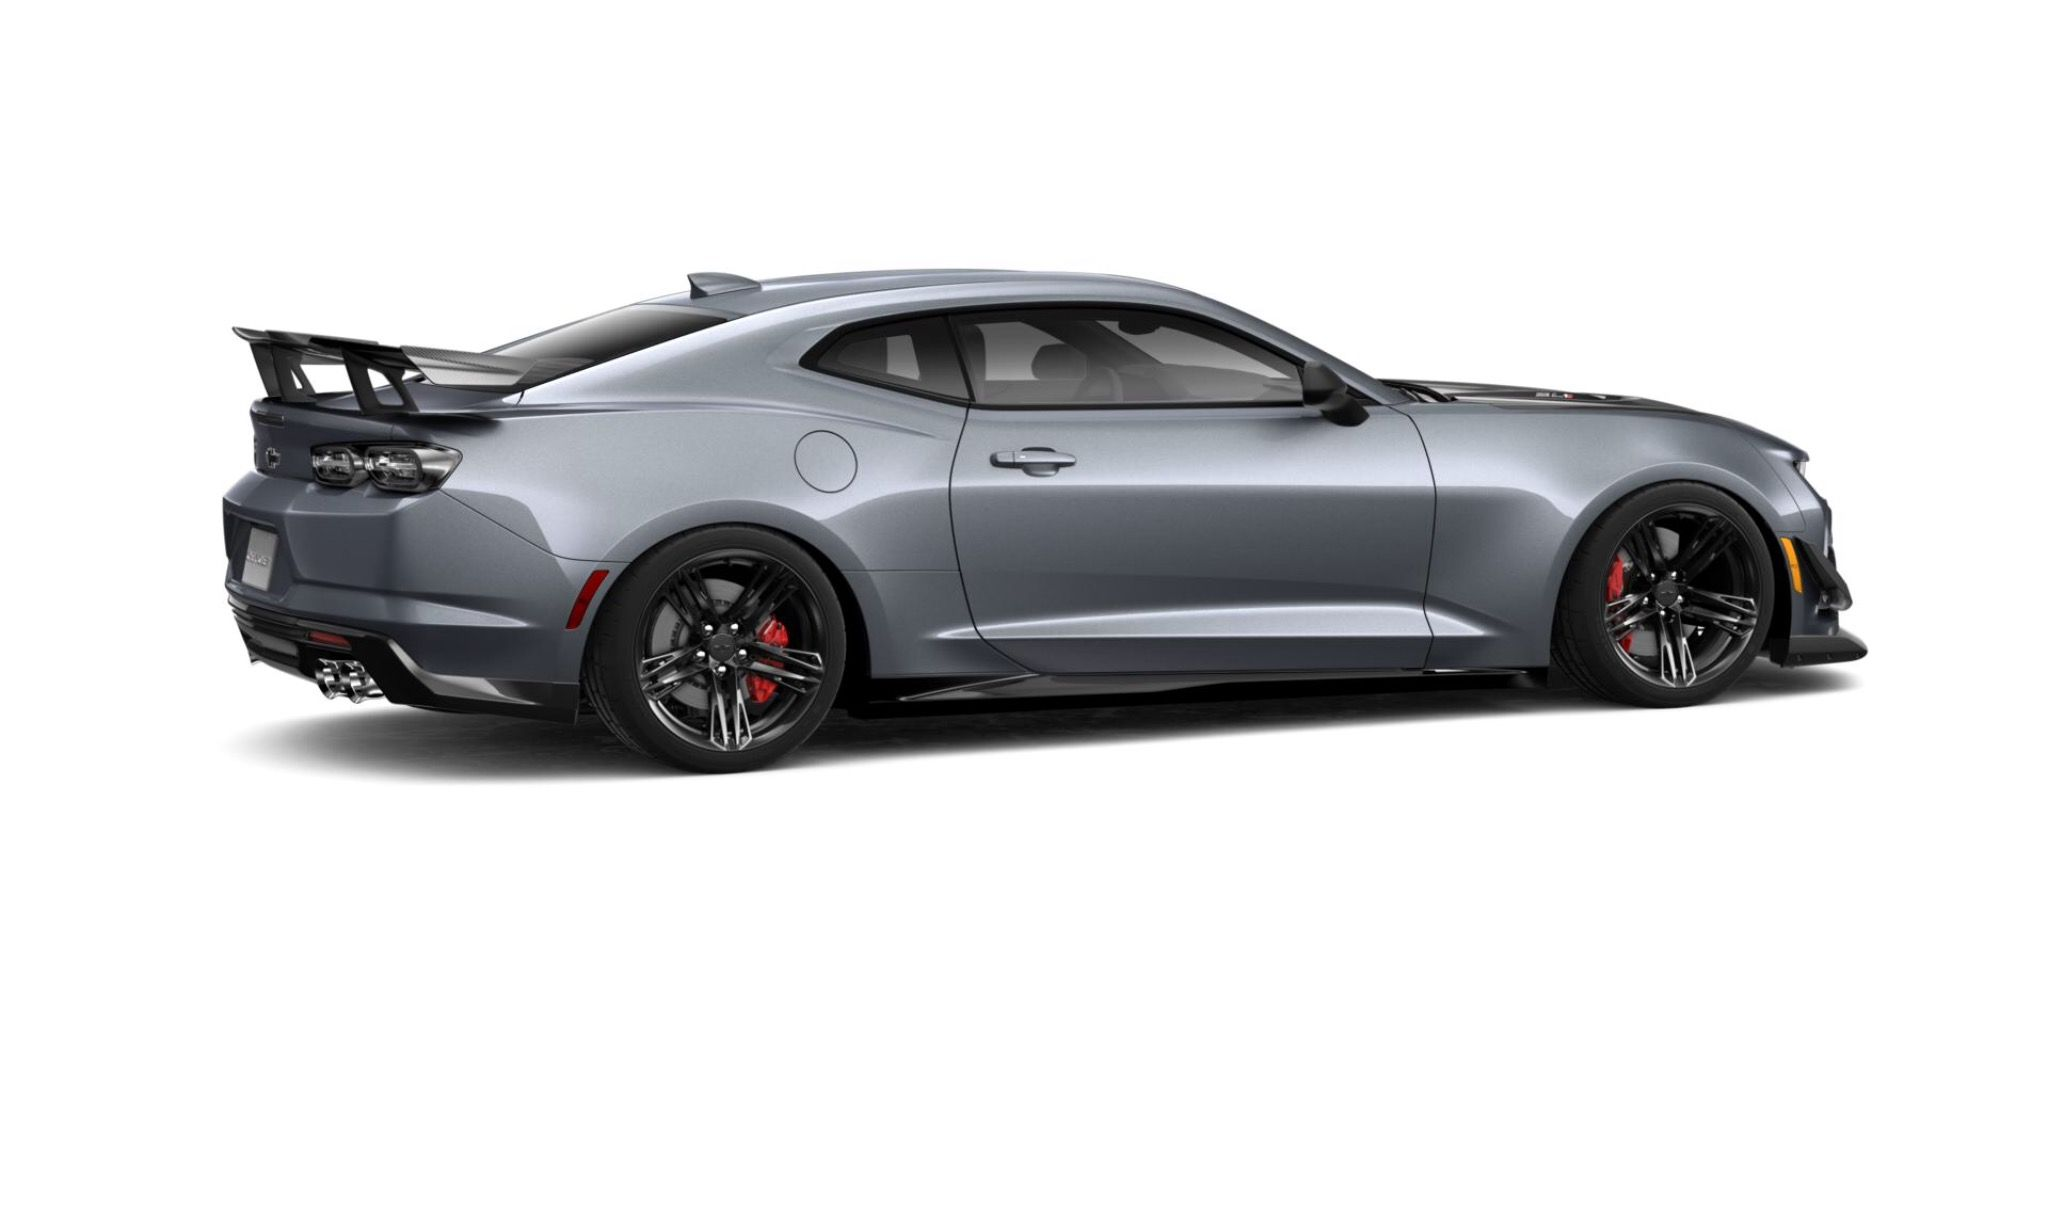 Rendering Of A 2019 Chevrolet Camaro Zl1 1le Painted In Satin